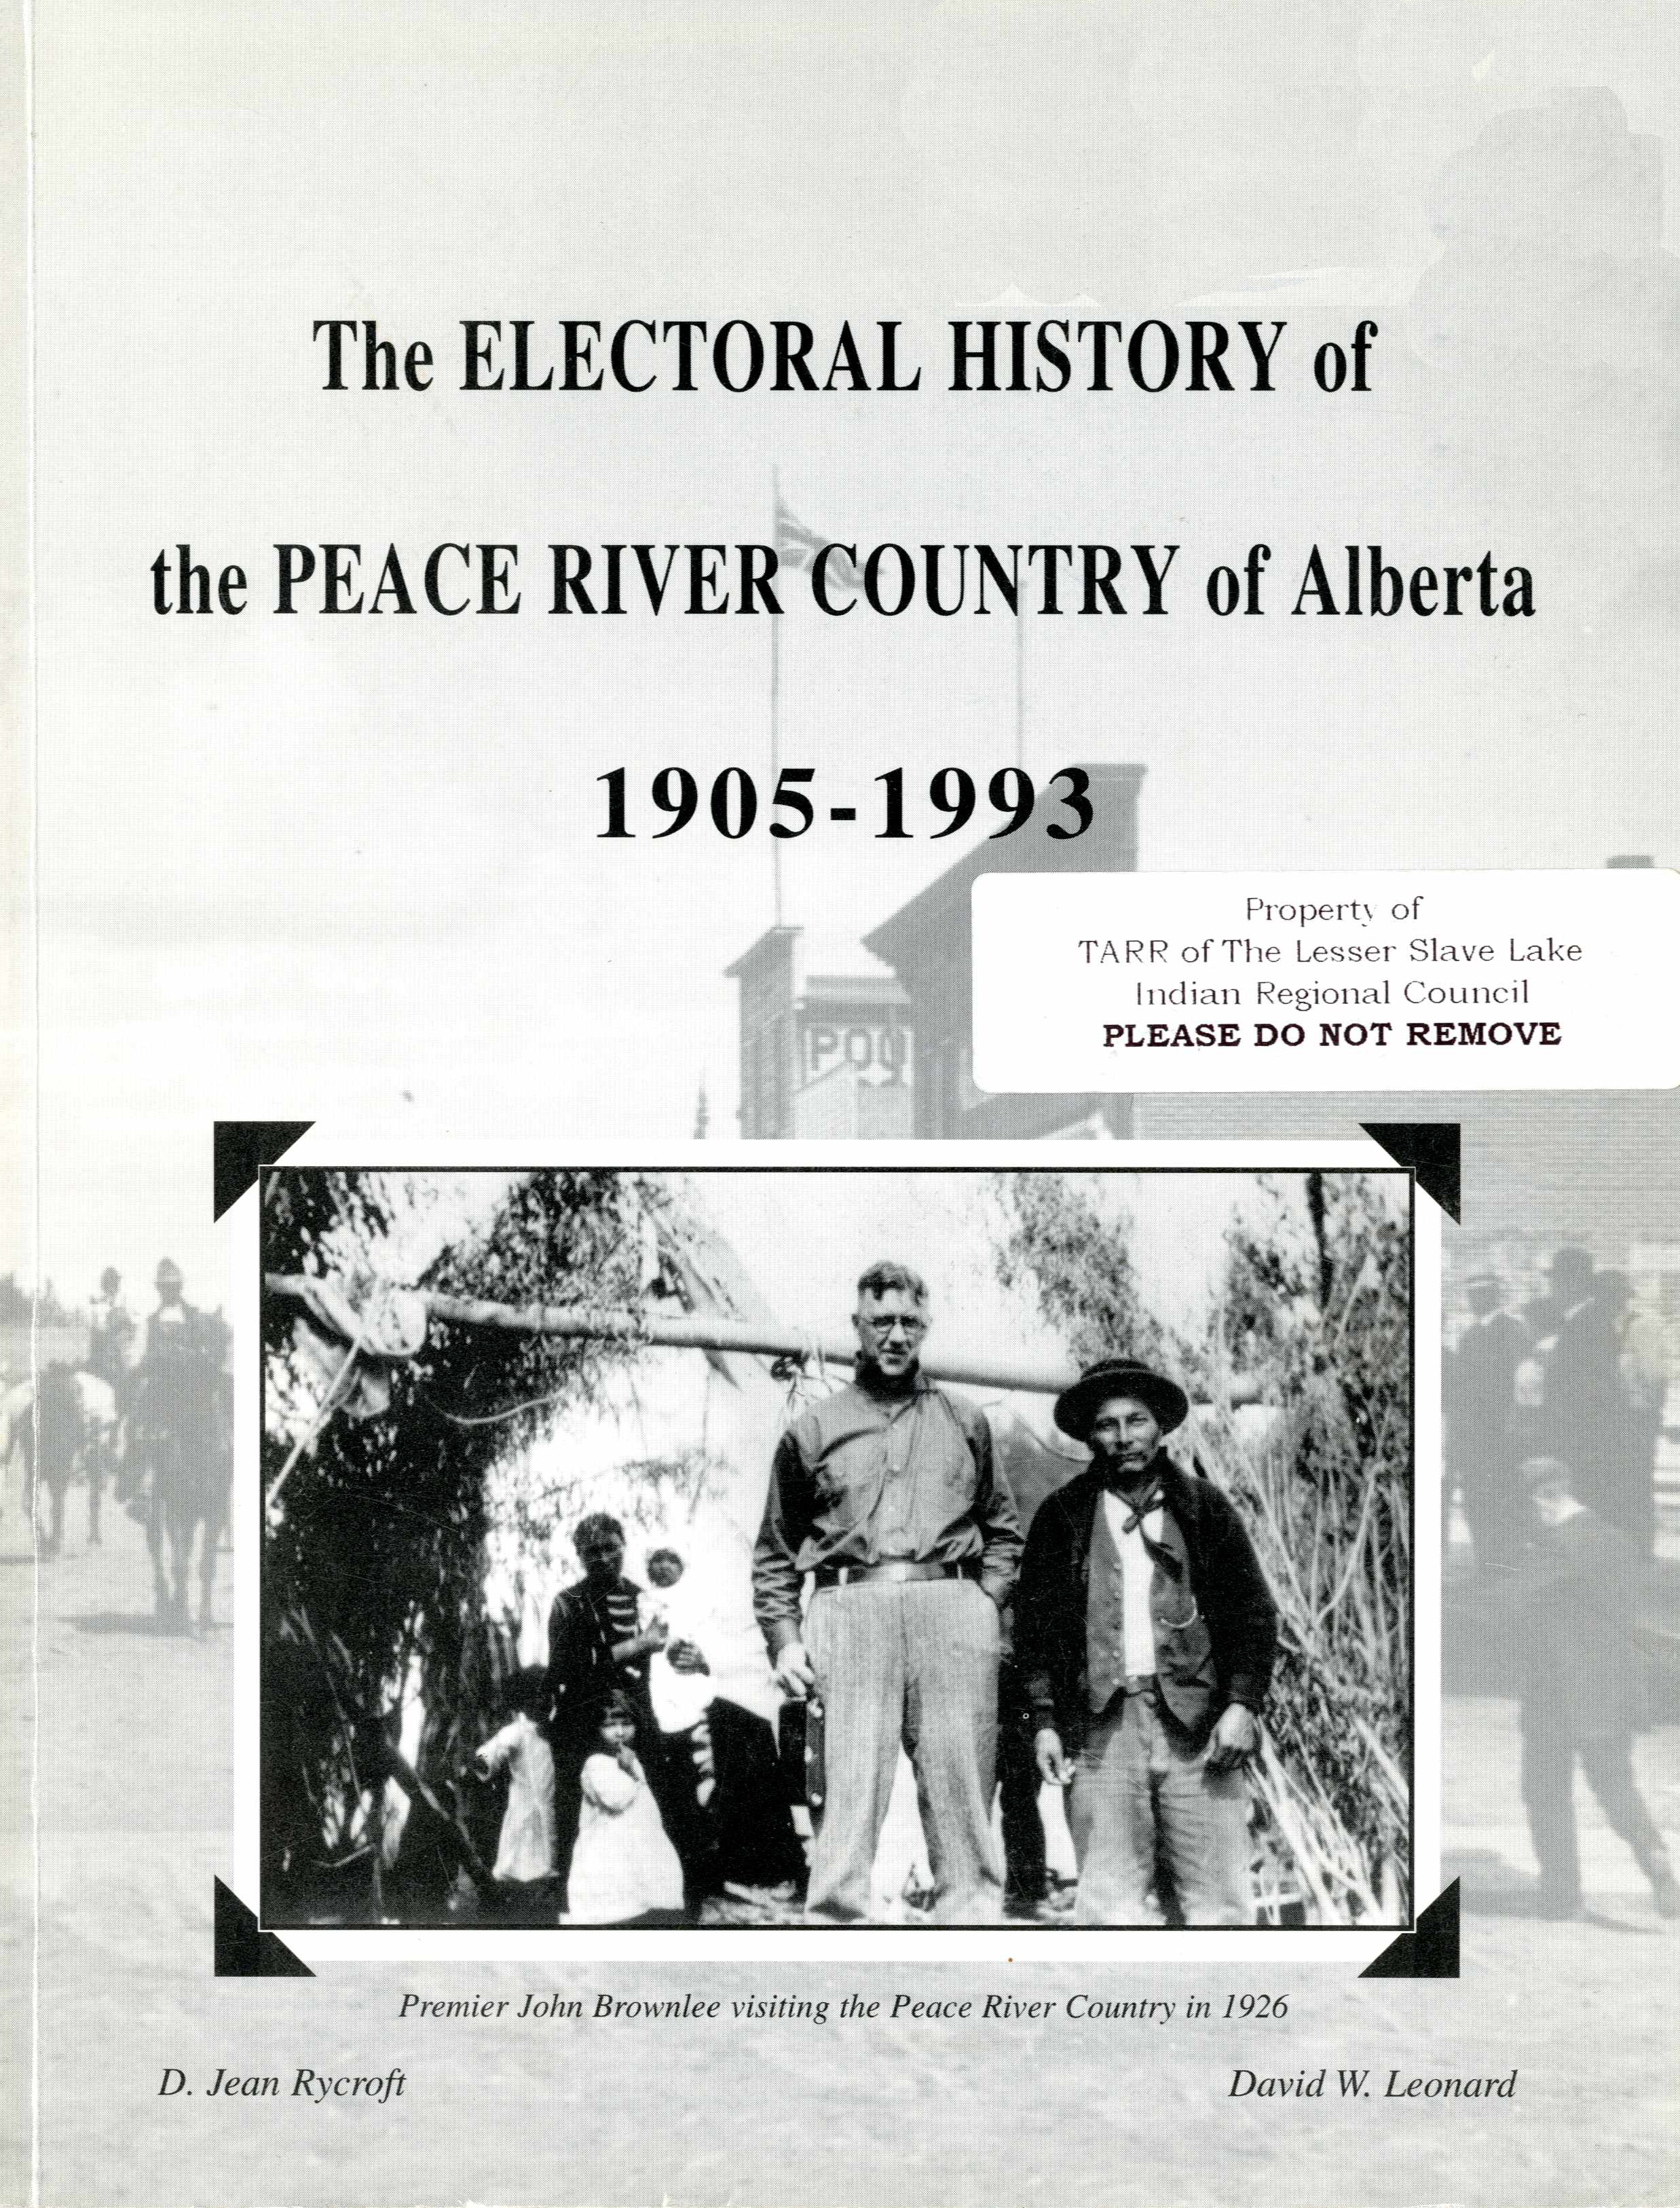 The Electoral History of the Peace River Country of Alberta 1905-1993 Image